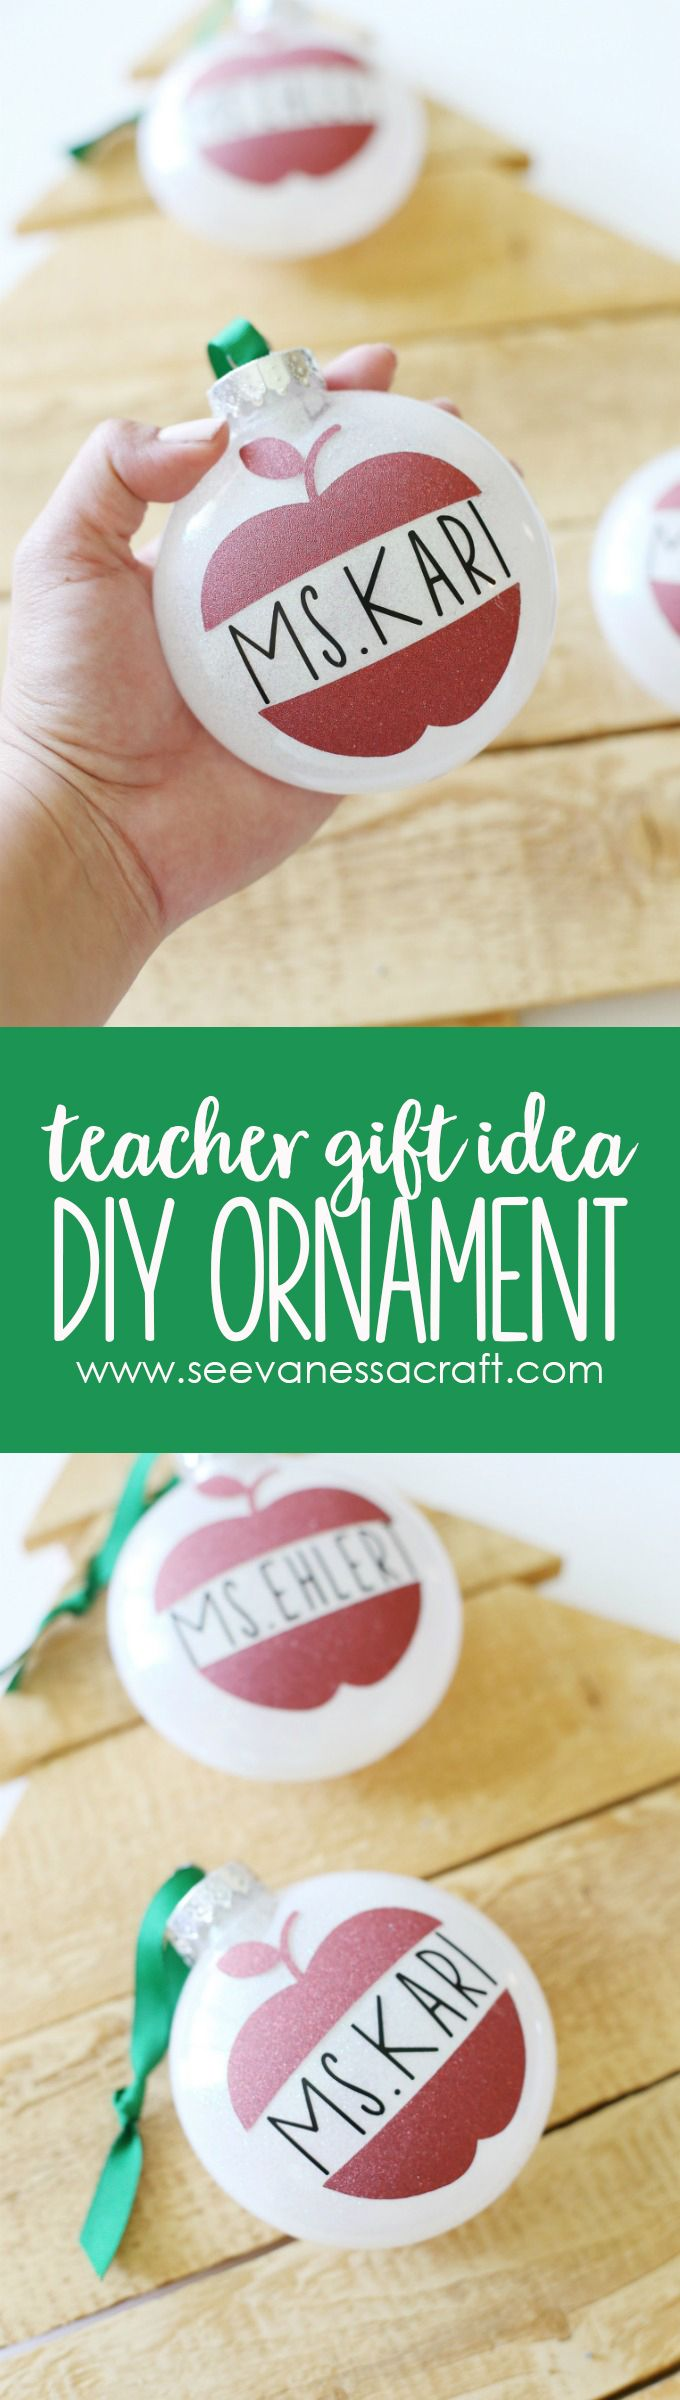 Getting a jumpstart on Christmas crafting with these DIY @Cricut glitter vinyl teacher ornaments!They'd make the perfect teacher holiday gift! #ad#CricutMade#CricutHoliday